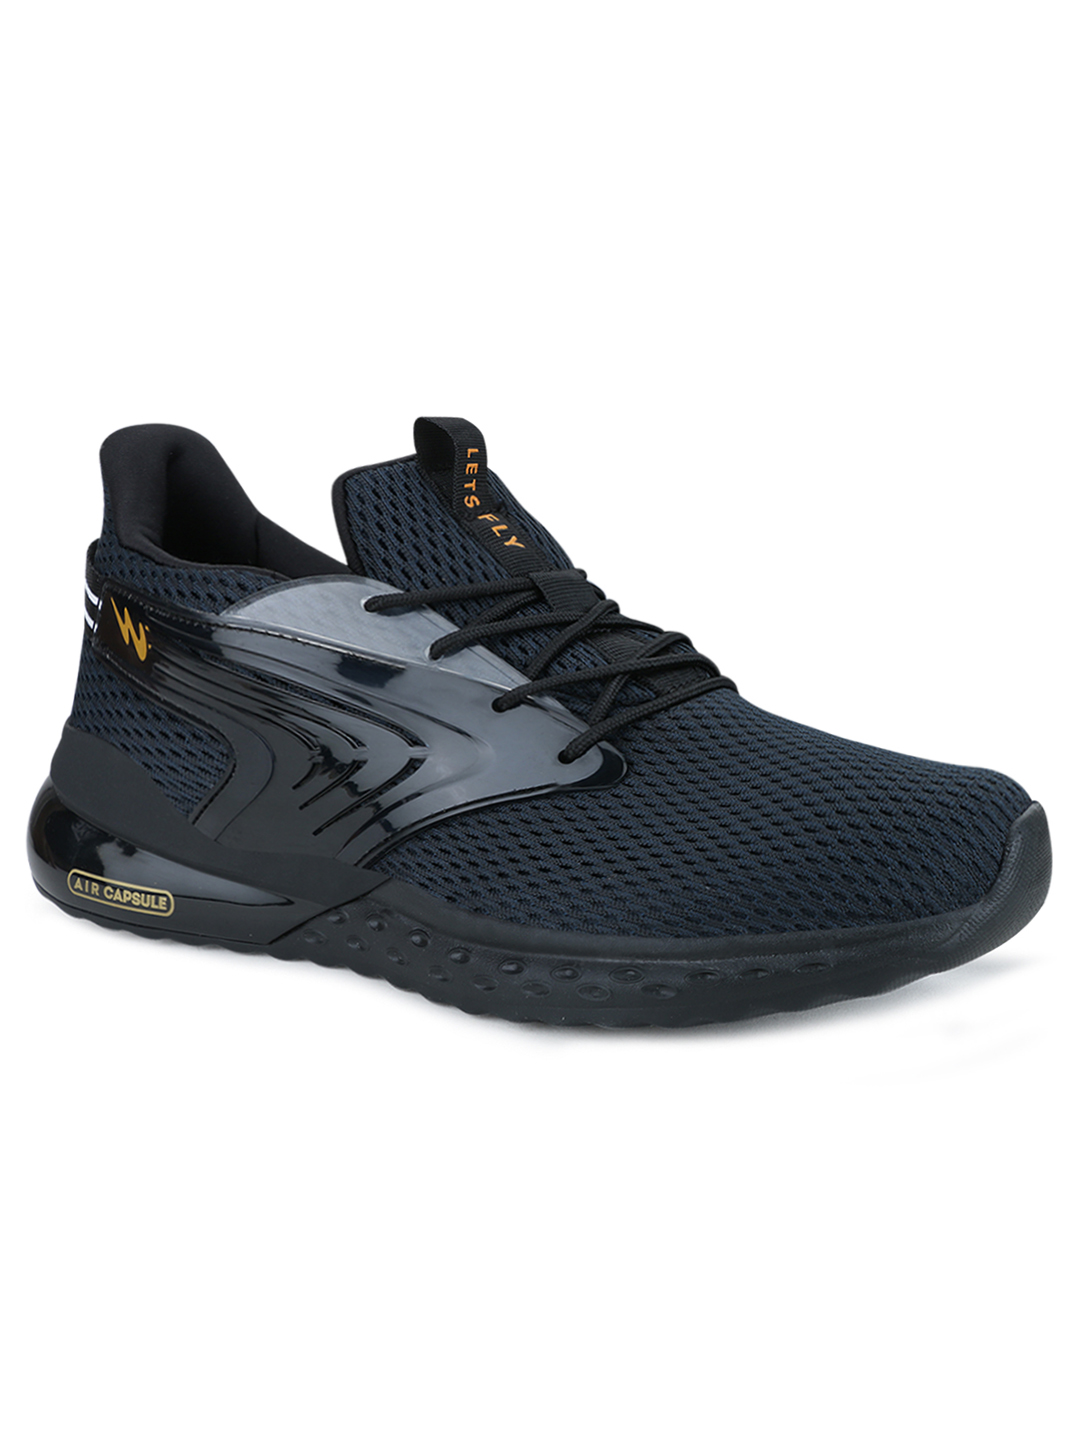 Campus Shoes | Black Morocco Running Shoes